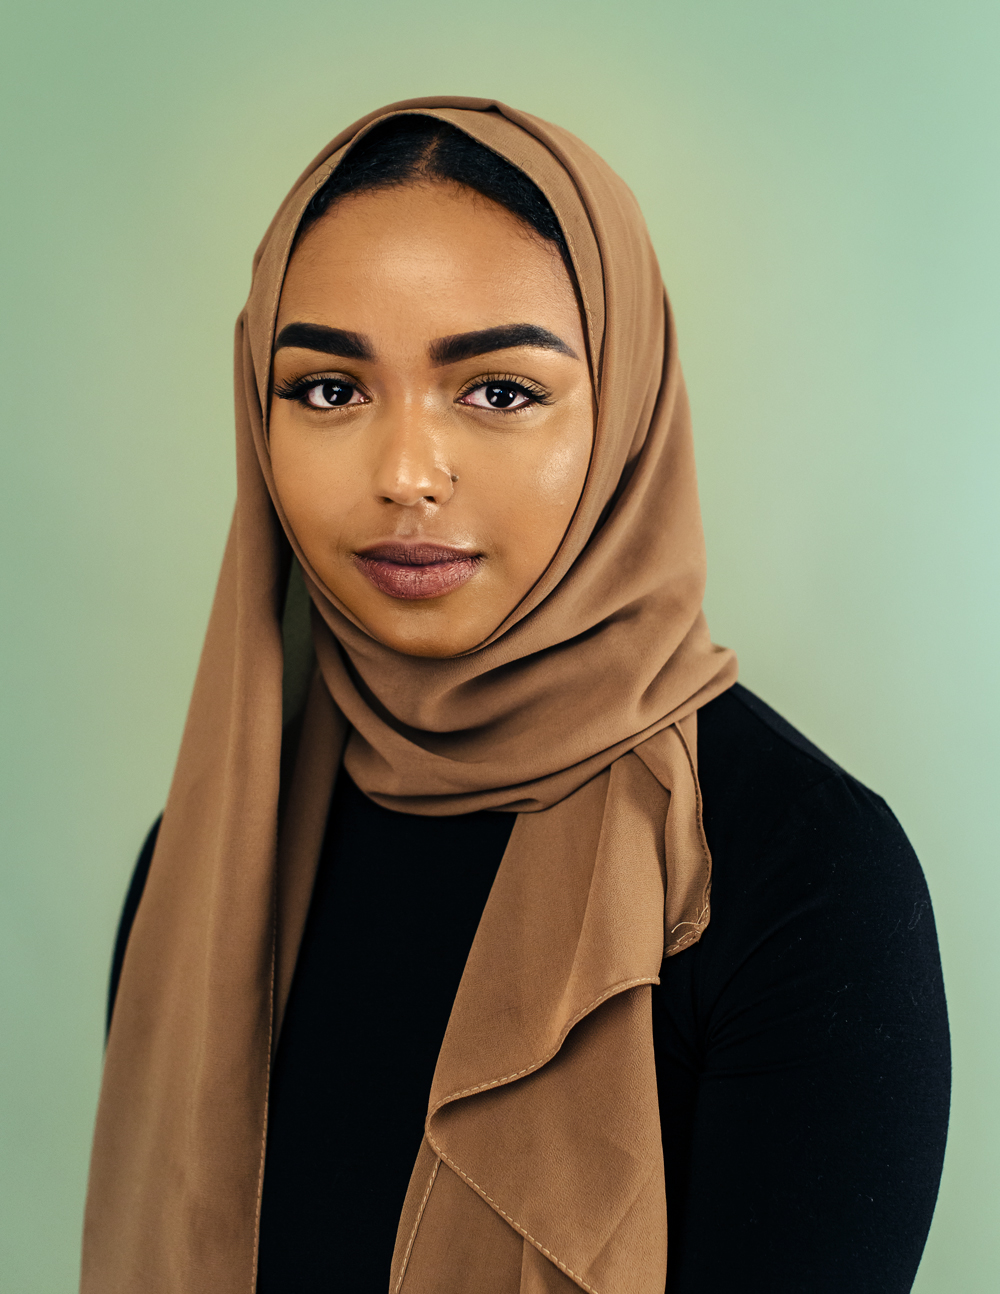 Shahd Batal photographed by Bobby Rogers